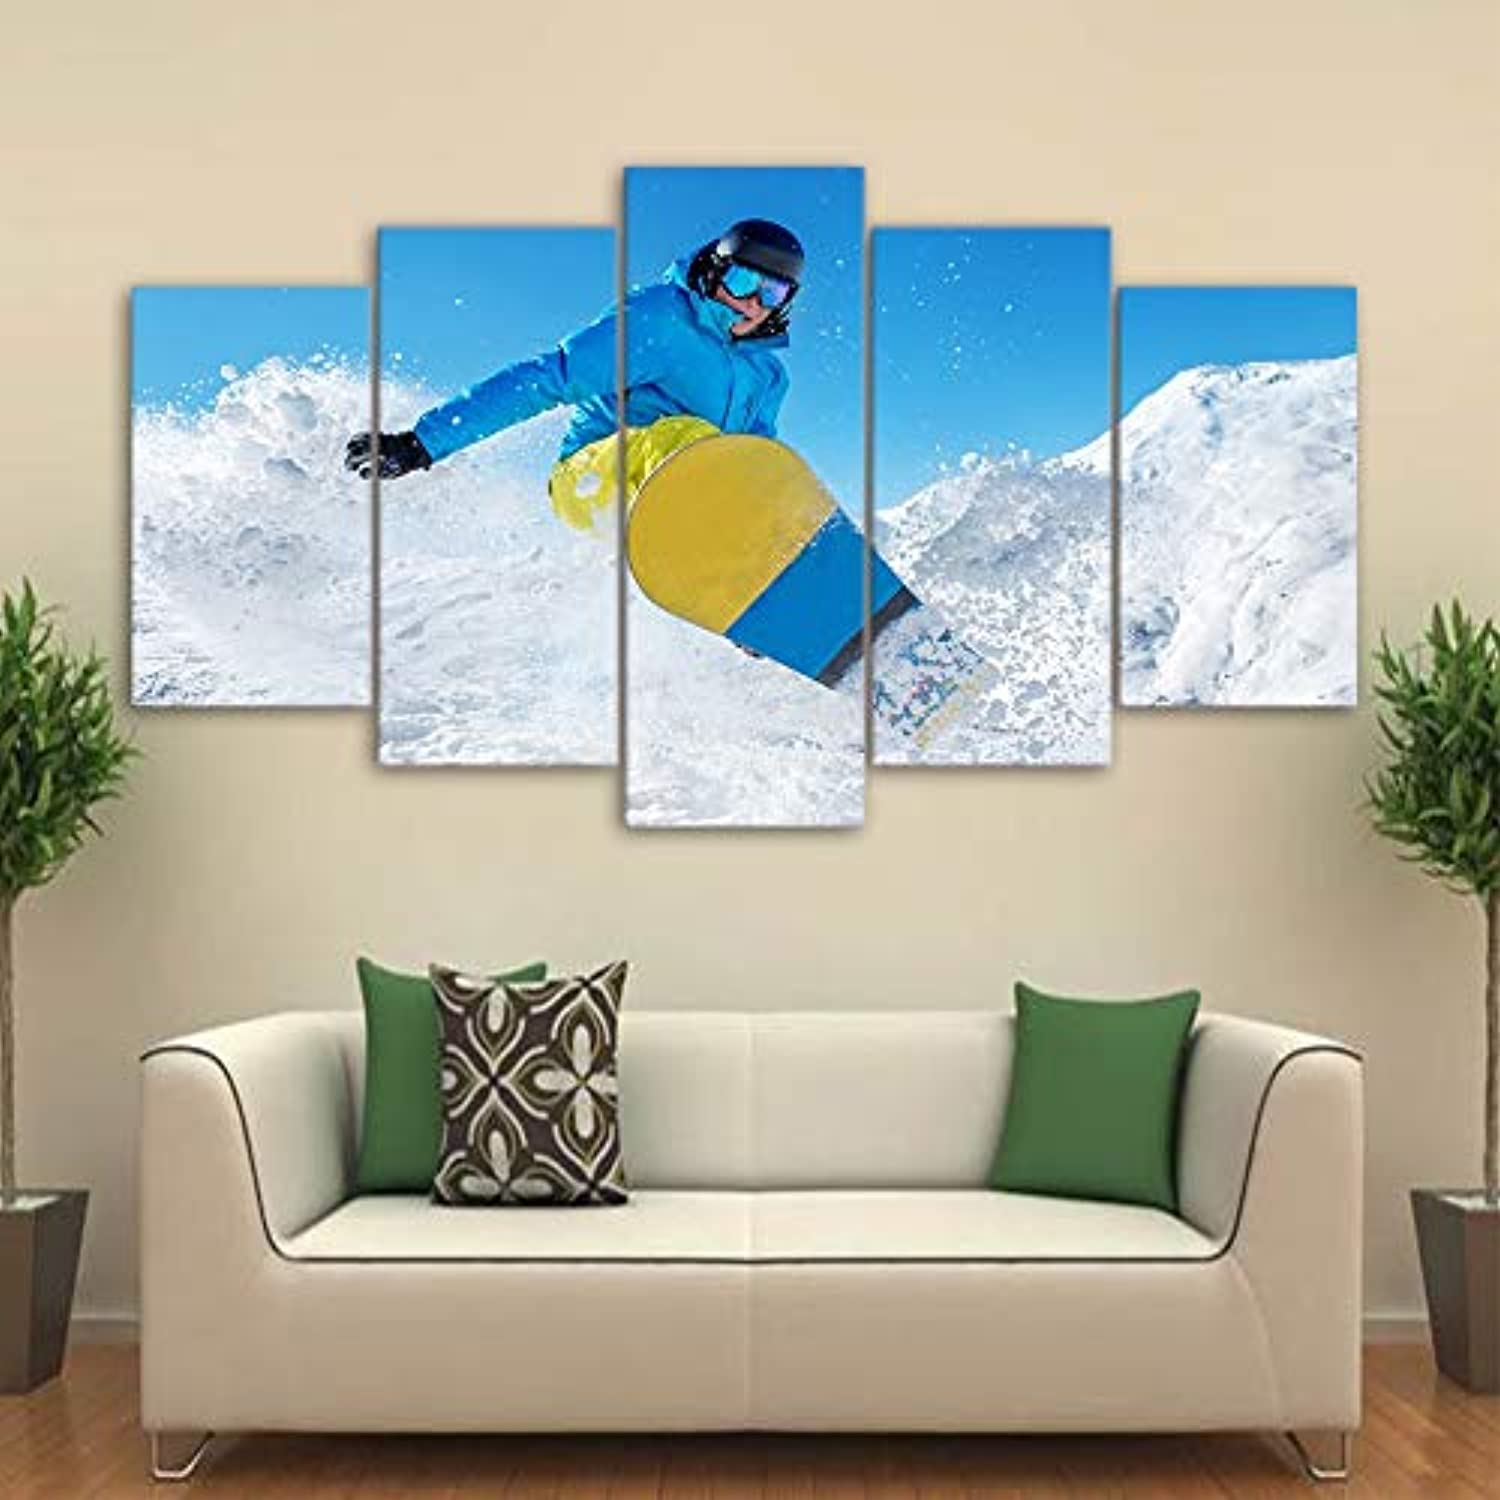 For Living Room Modern HD Printed Pictures 5 Piece Pcs Ski Snow Mountain Home Decor Framework Canvas Painting Poster